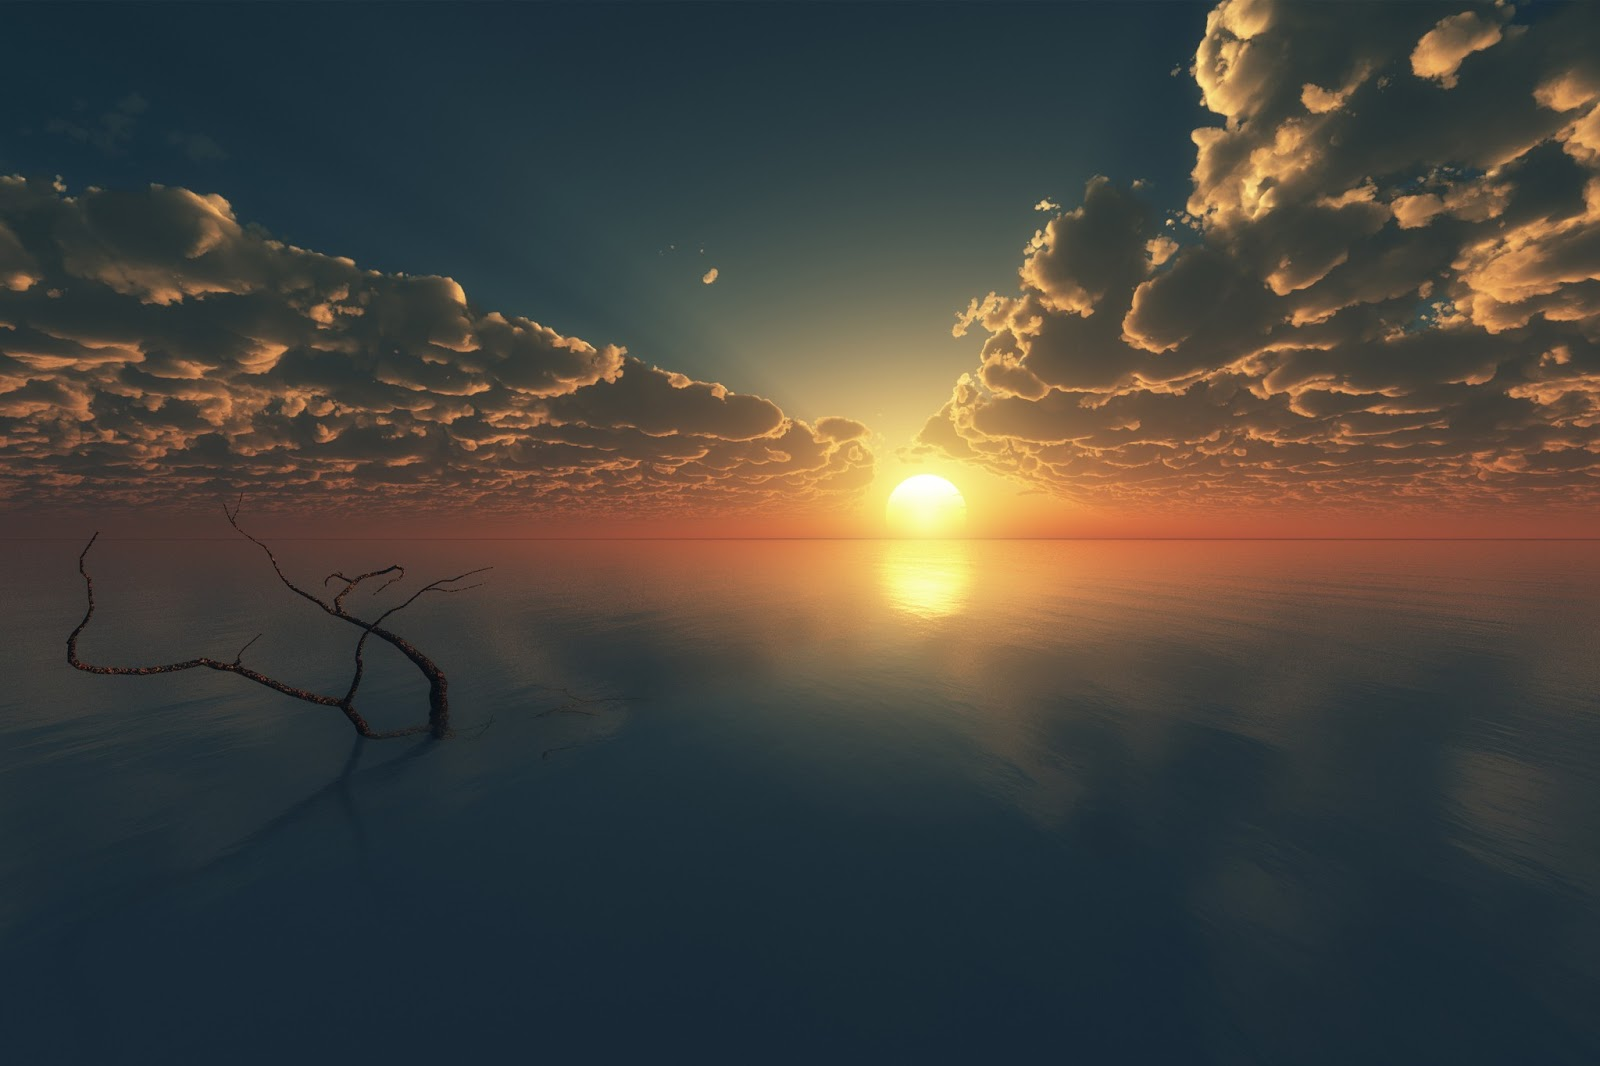 Cinema Wallpapers With Quotes Sunset Photography Hd Wallpapers High Definition